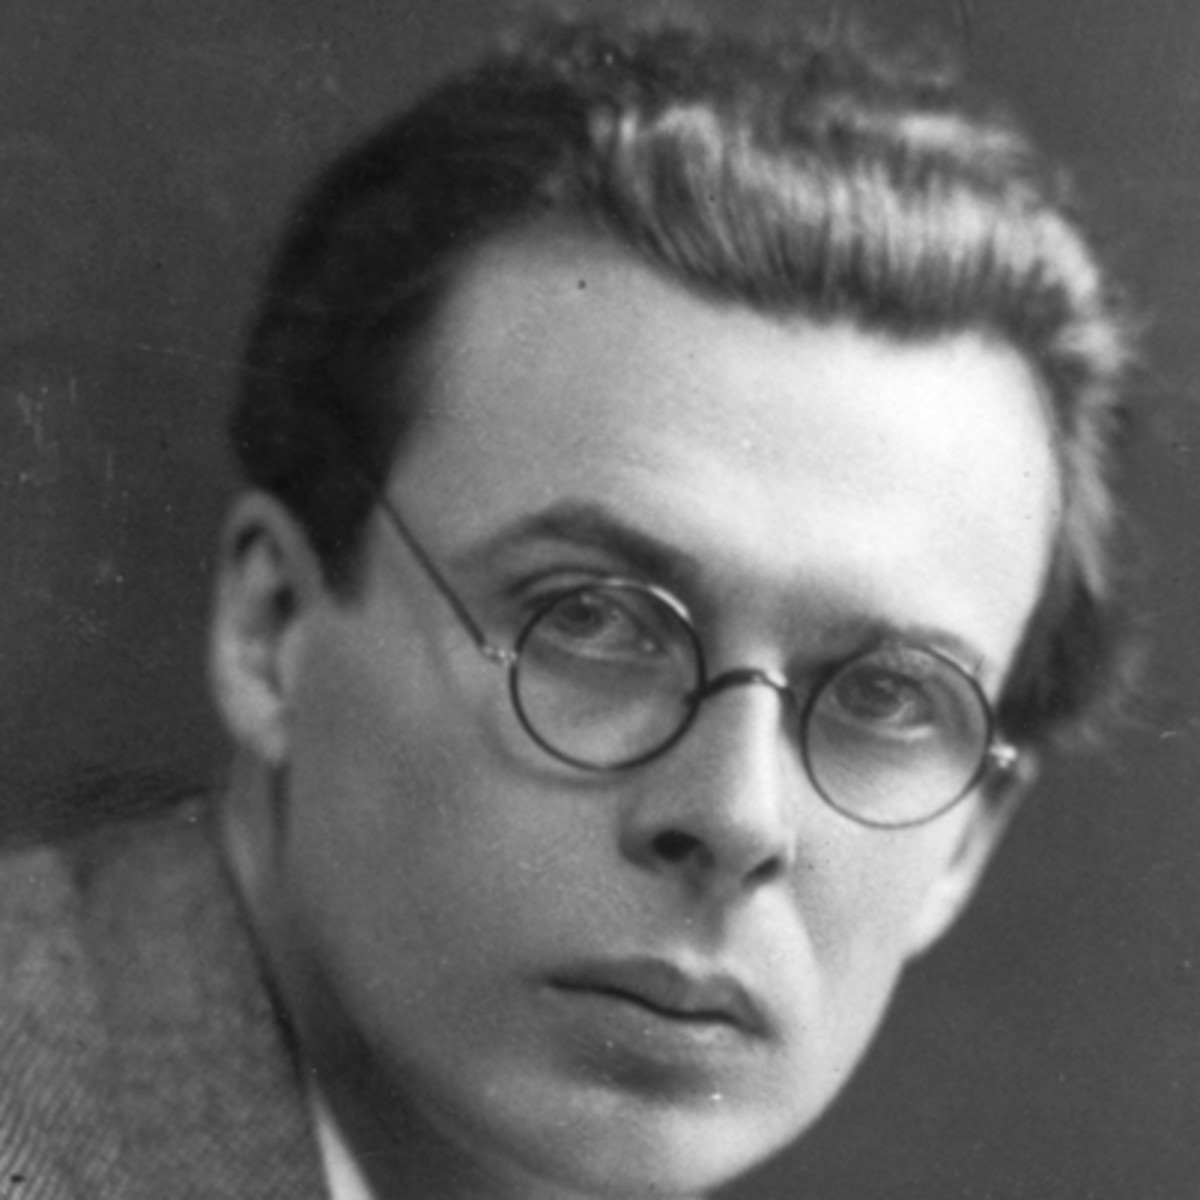 aldoux huxley brave new world annotated bibliography 23 my life and work essay examples from #1 writing service eliteessaywriters™ get more argumentative, persuasive my life and work essay samples and other research papers after sing up.